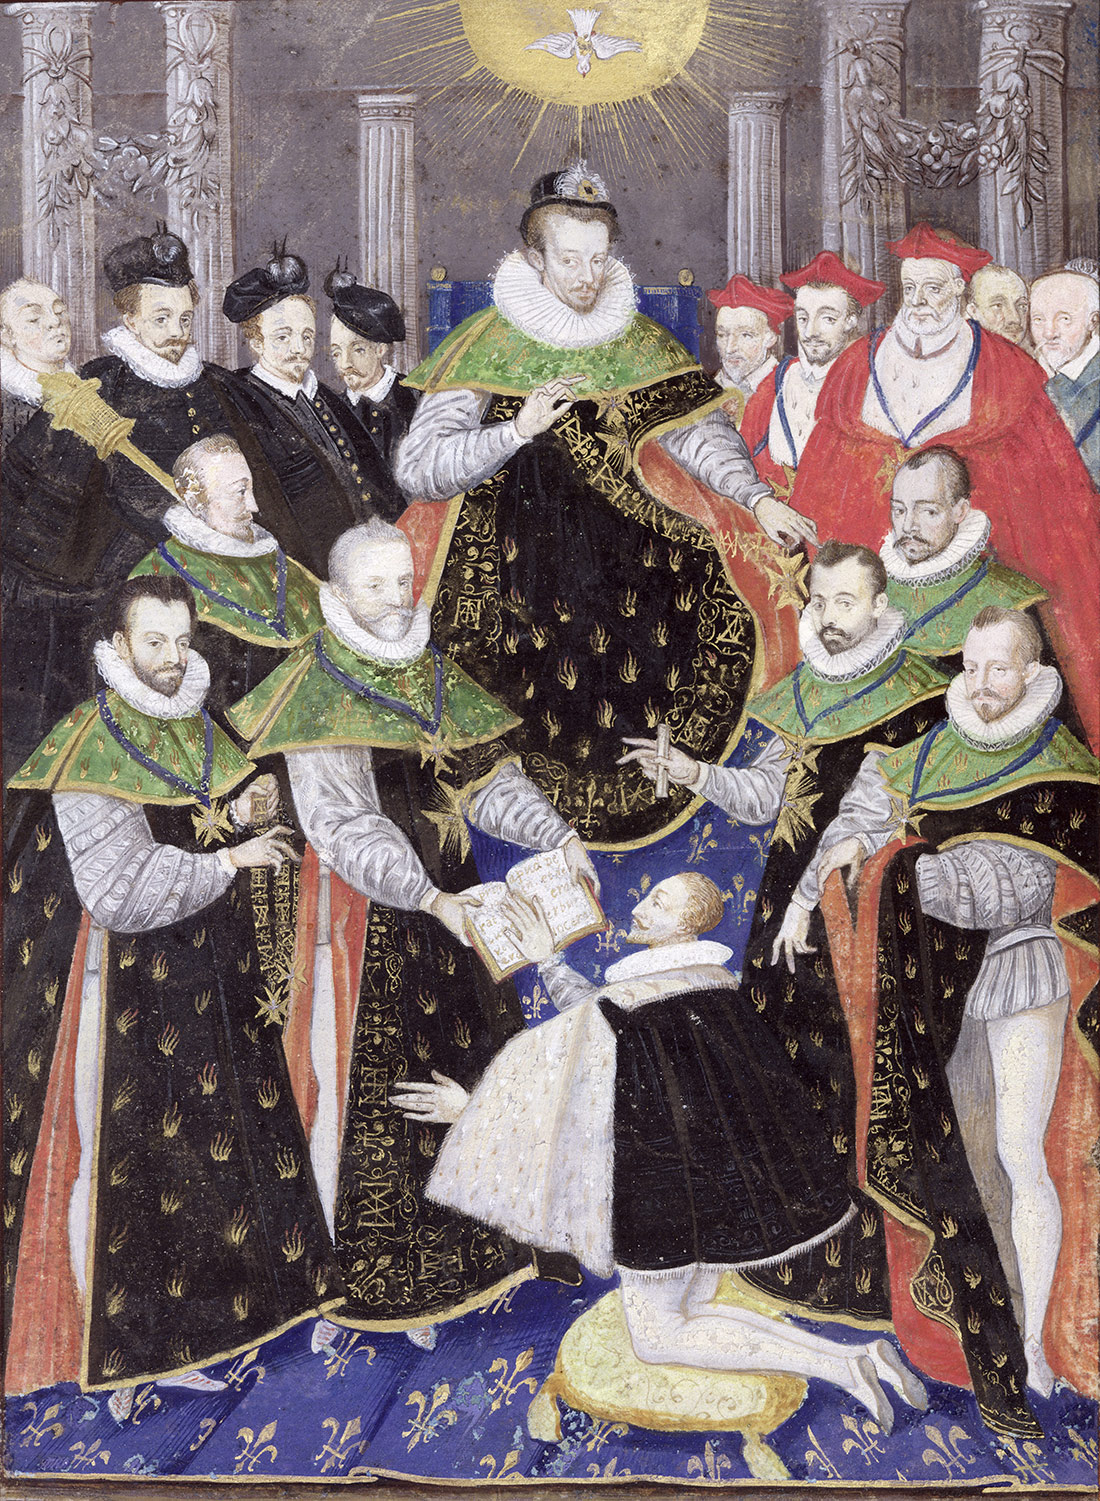 Henry III at court, from the First Chapter of the Holy Spirit, 16th-century manuscript.